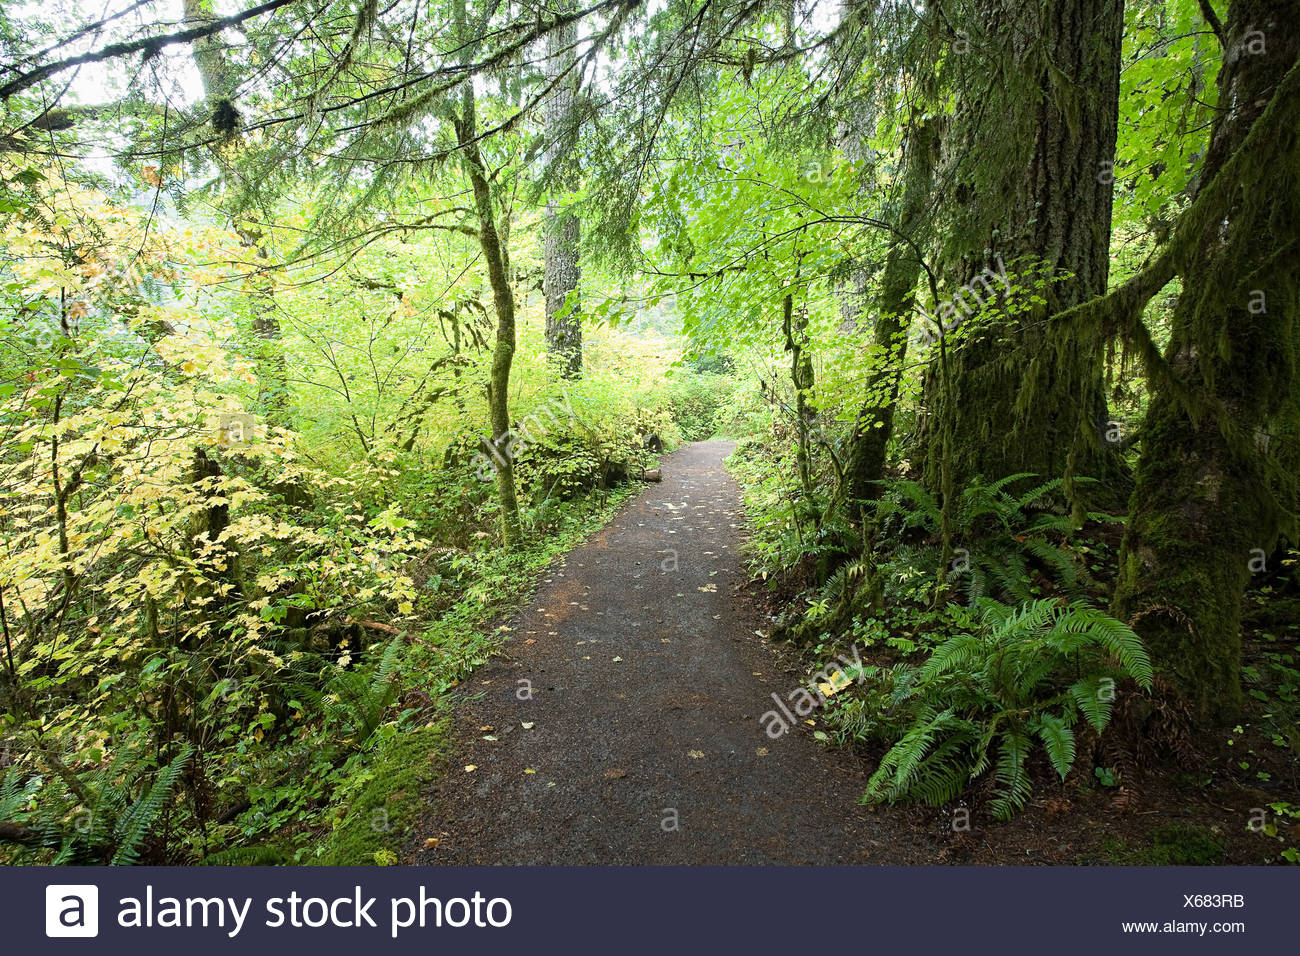 Path through silver falls state park - Stock Image